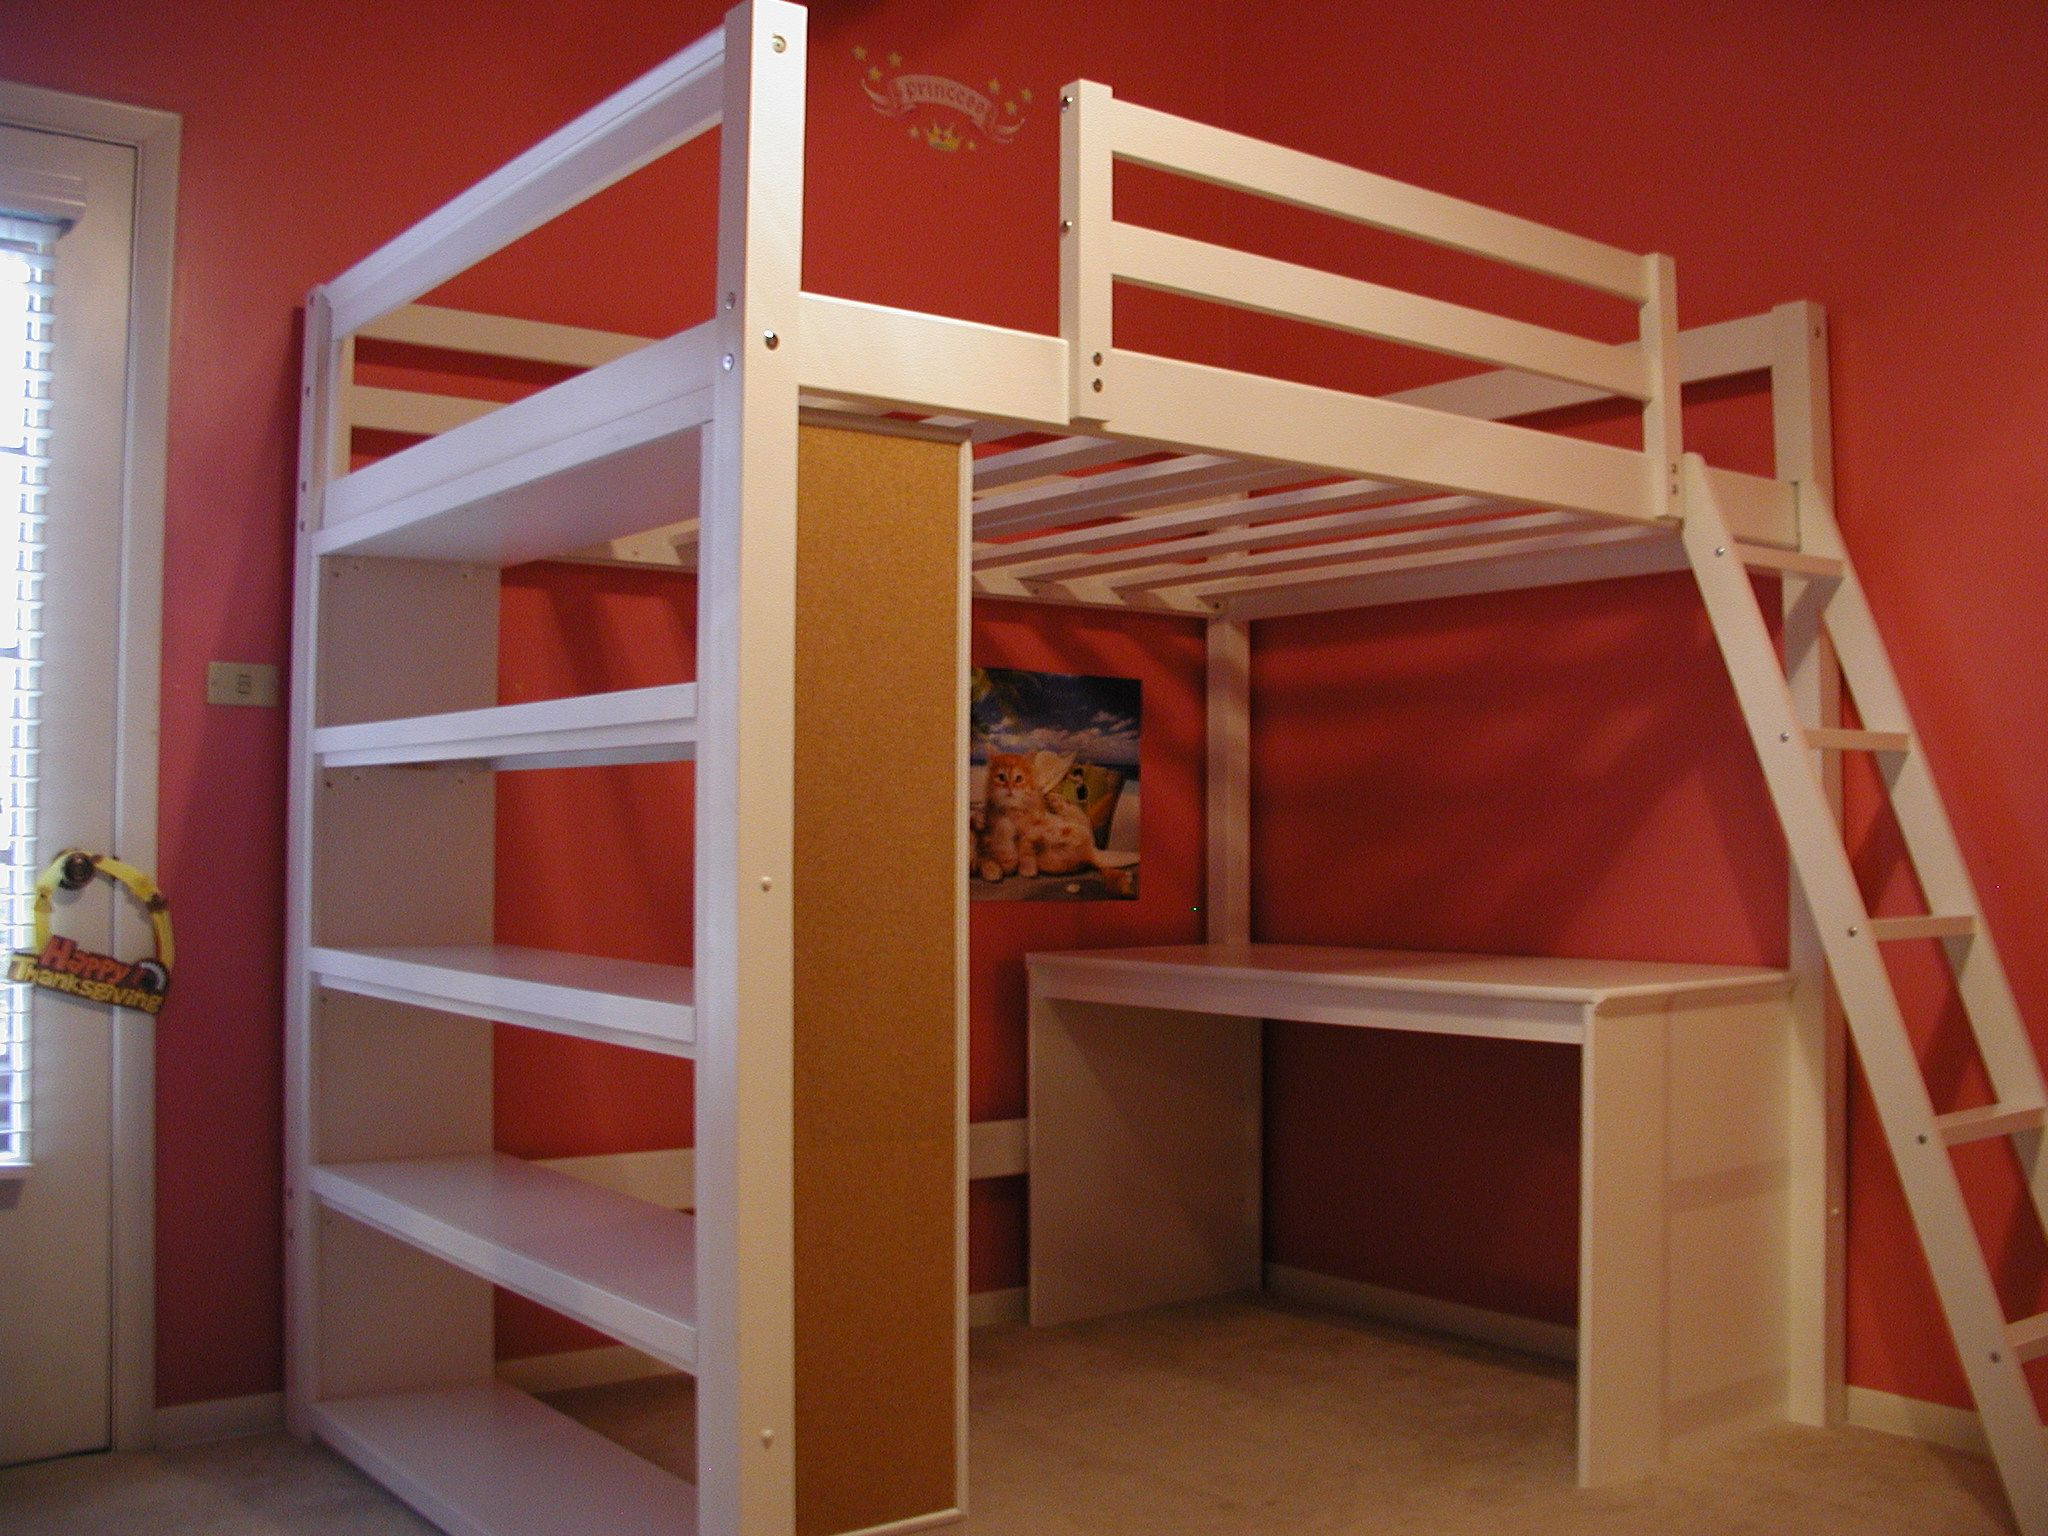 I build this Big Space Loft Bed. loftmonkeycleveland @ gmail.com ...